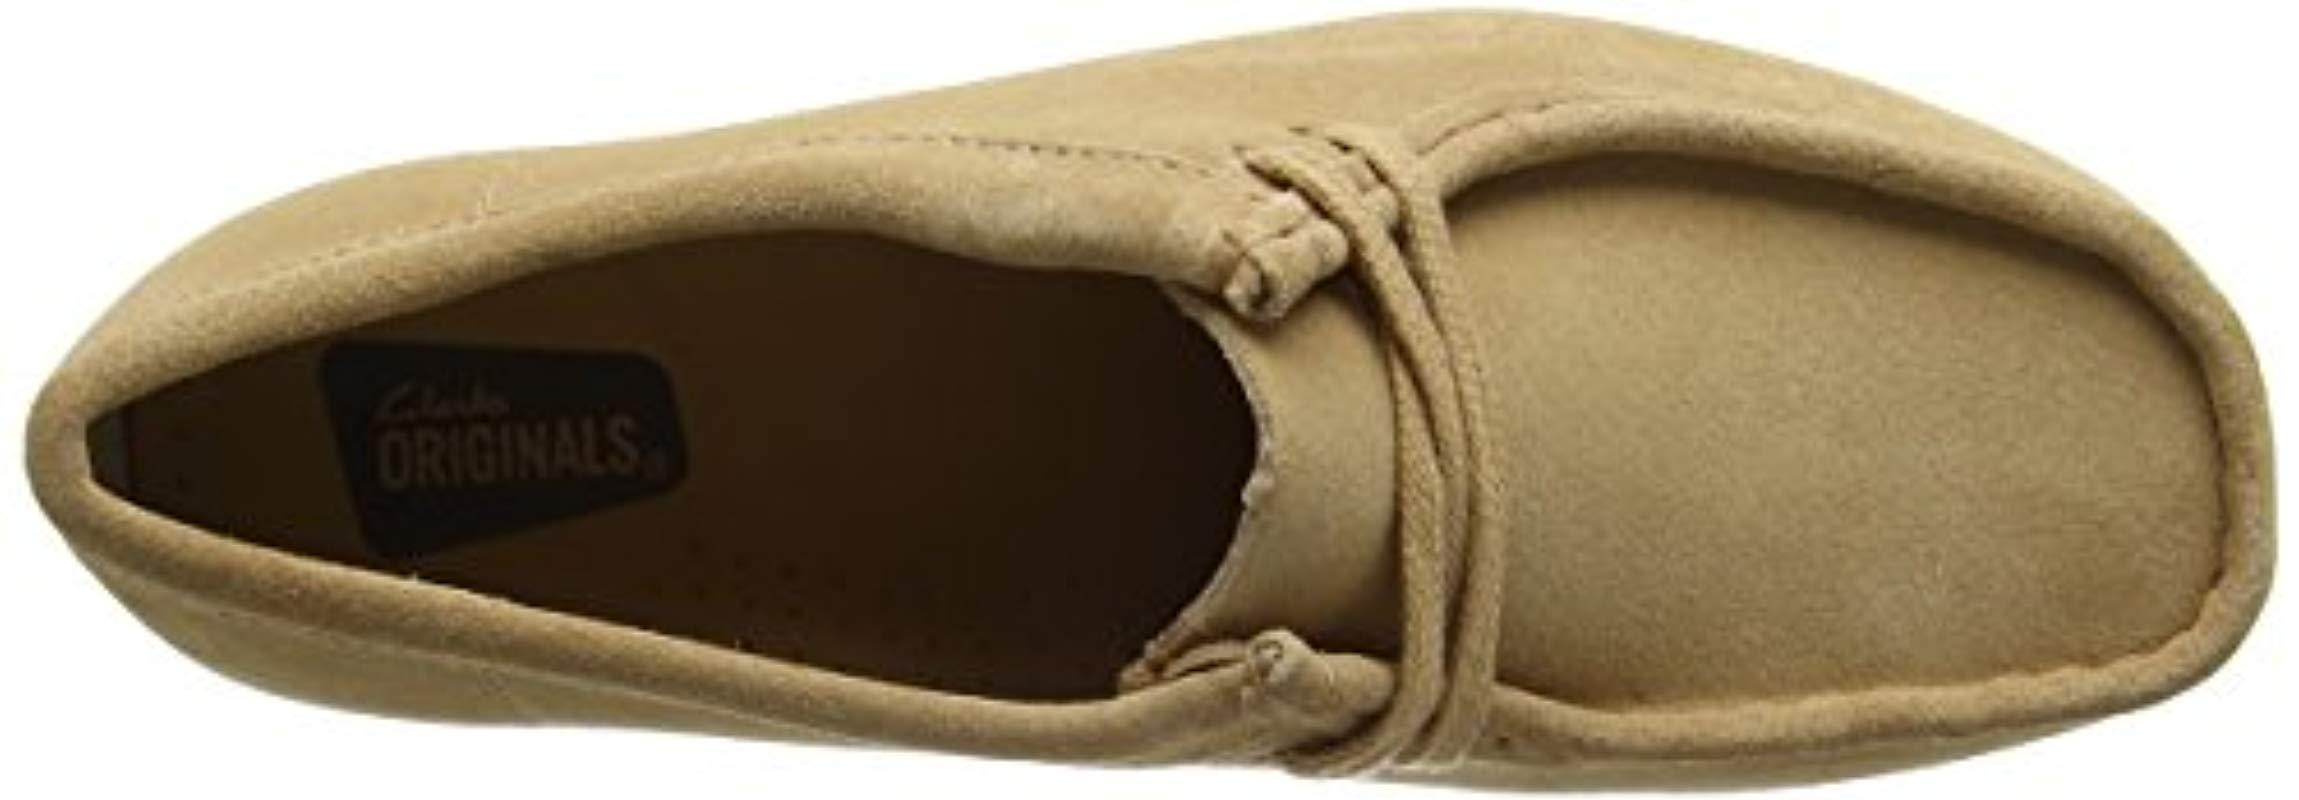 Clarks Leather Wallabee Derbys in Natural